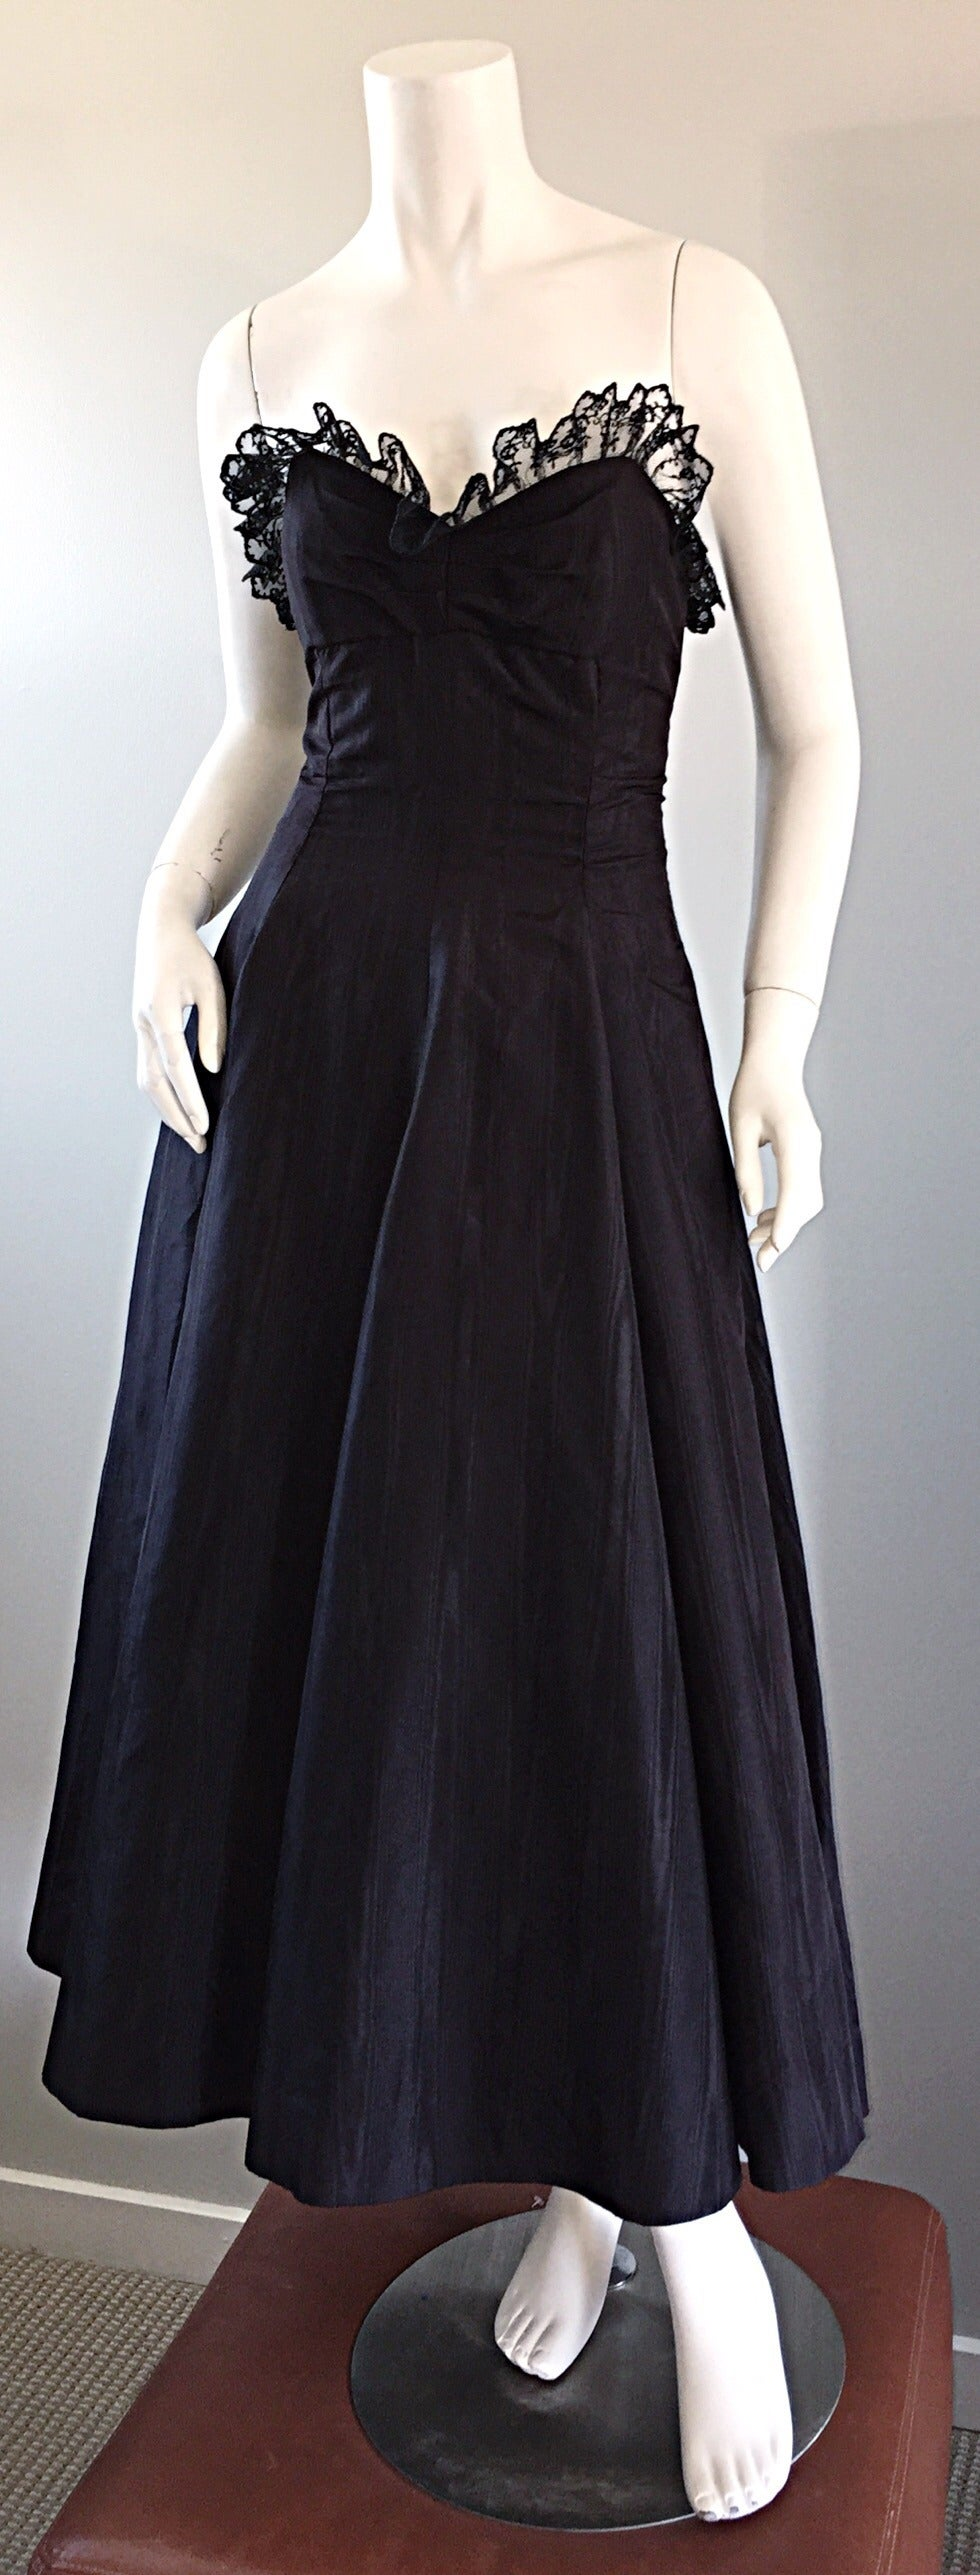 "1950s 50s Black Silk Taffeta + Lace Strapless "" New Look "" Vintage Dress 8"